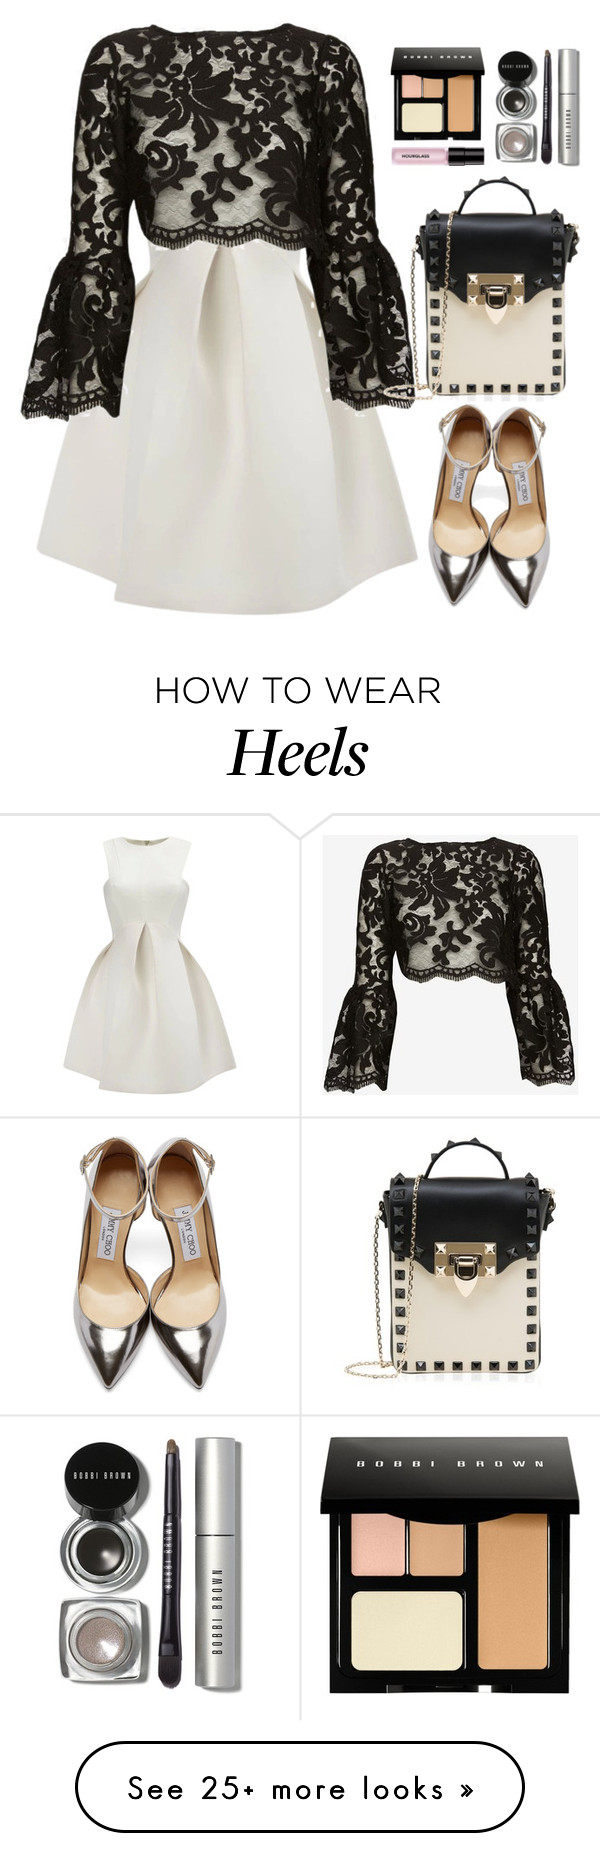 """Alexis bell sleeve top"" by thestyleartisan on Polyvore featuring мода, Alexis, Valentino, Jimmy Choo, Bobbi Brown Cosmetics, Hourglass Cosmetics и bellsleevedress"